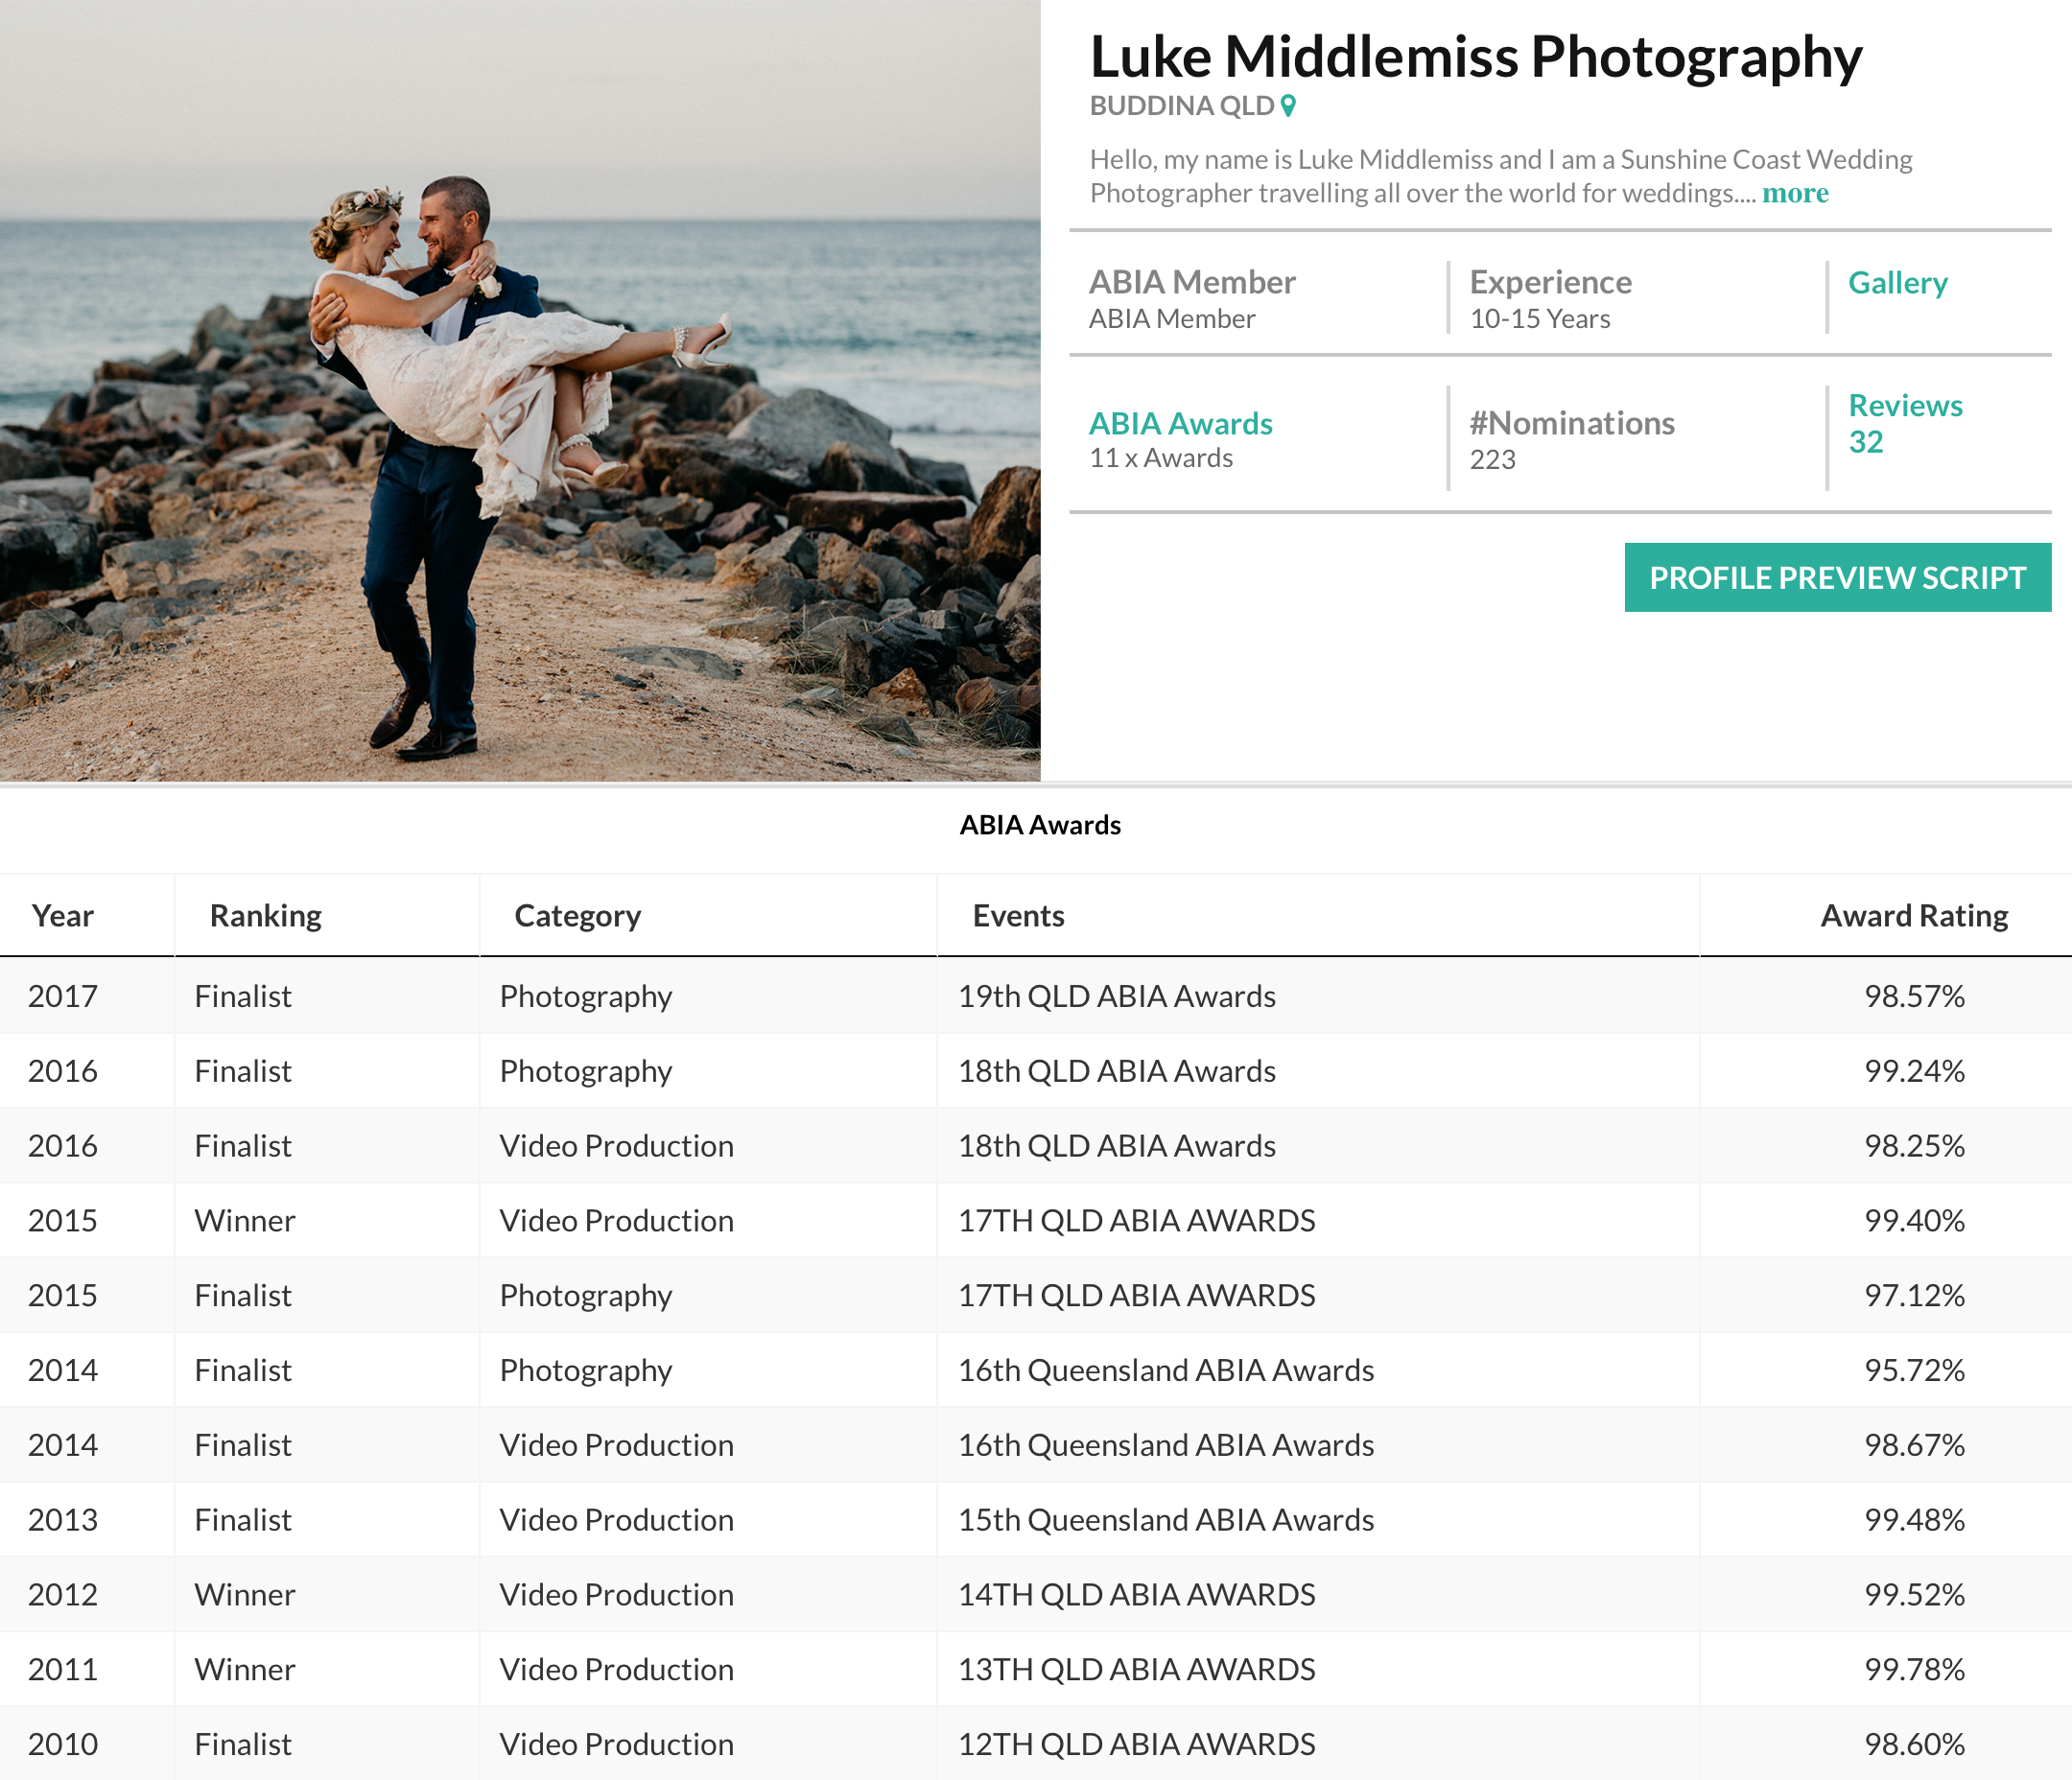 Awards for Luke Middlemiss Photography in the wedding industry